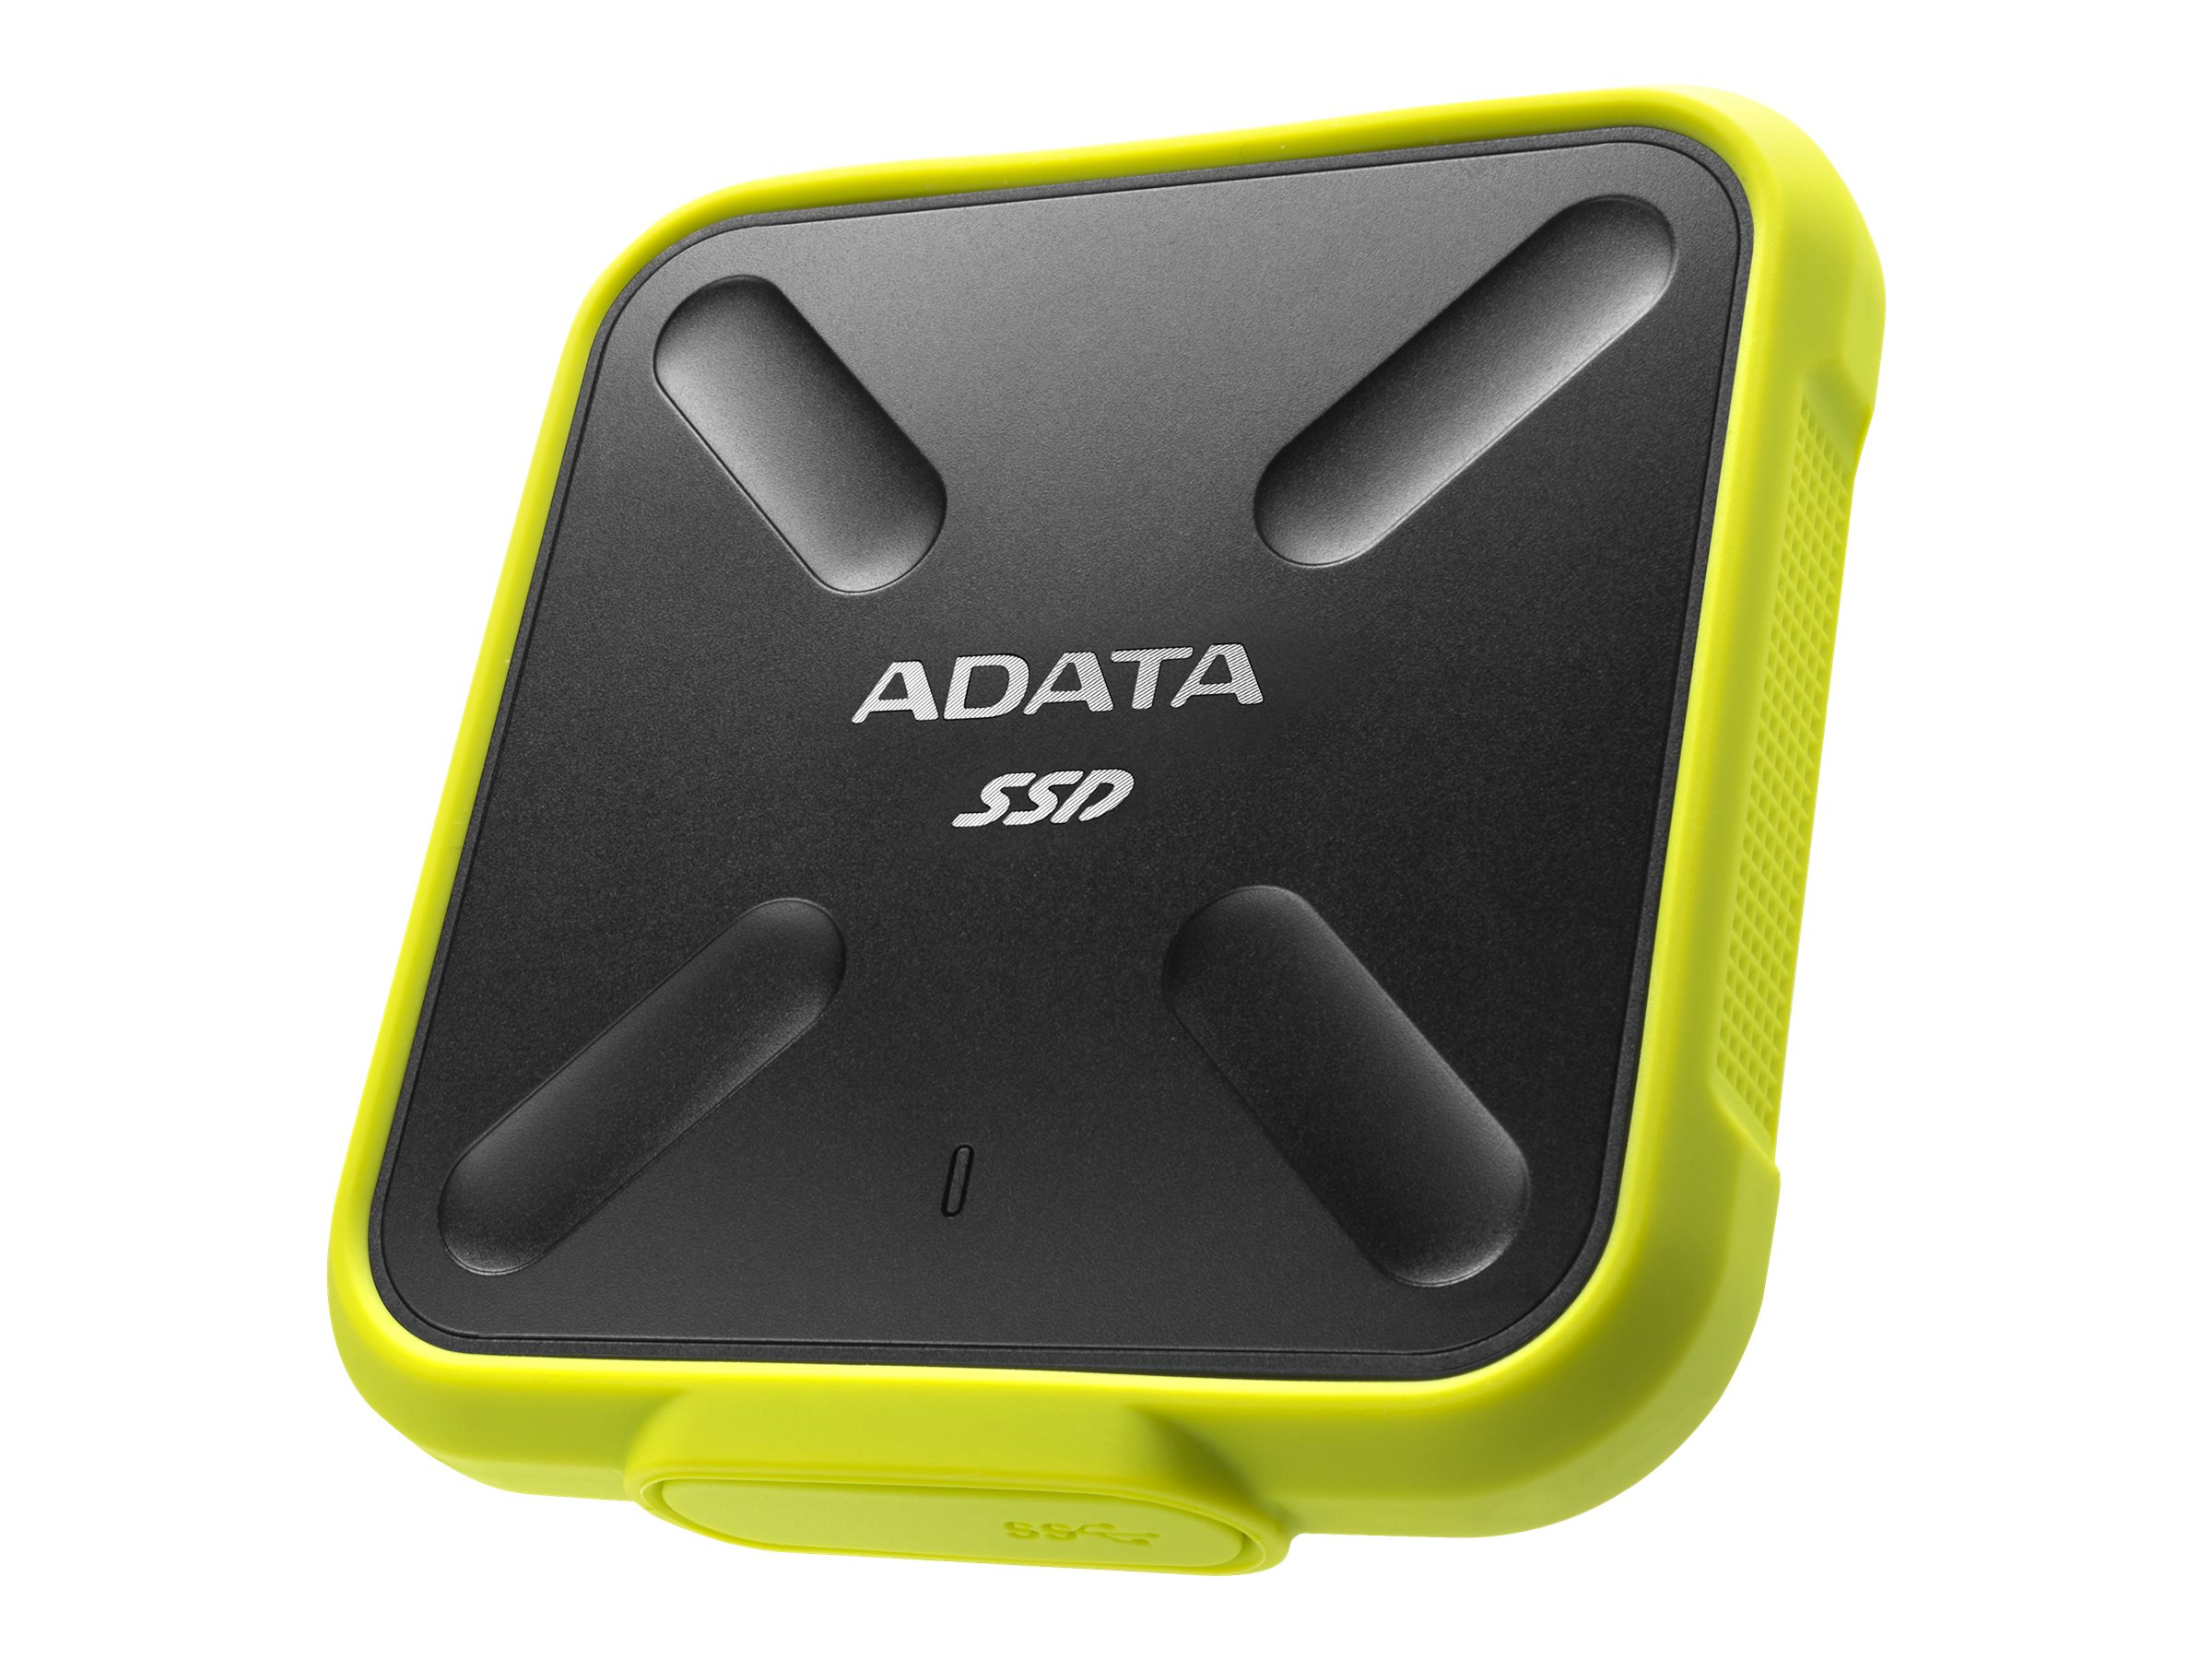 ADATA Durable SD700 - solid state drive - 1 TB - USB 3.1 Gen 1